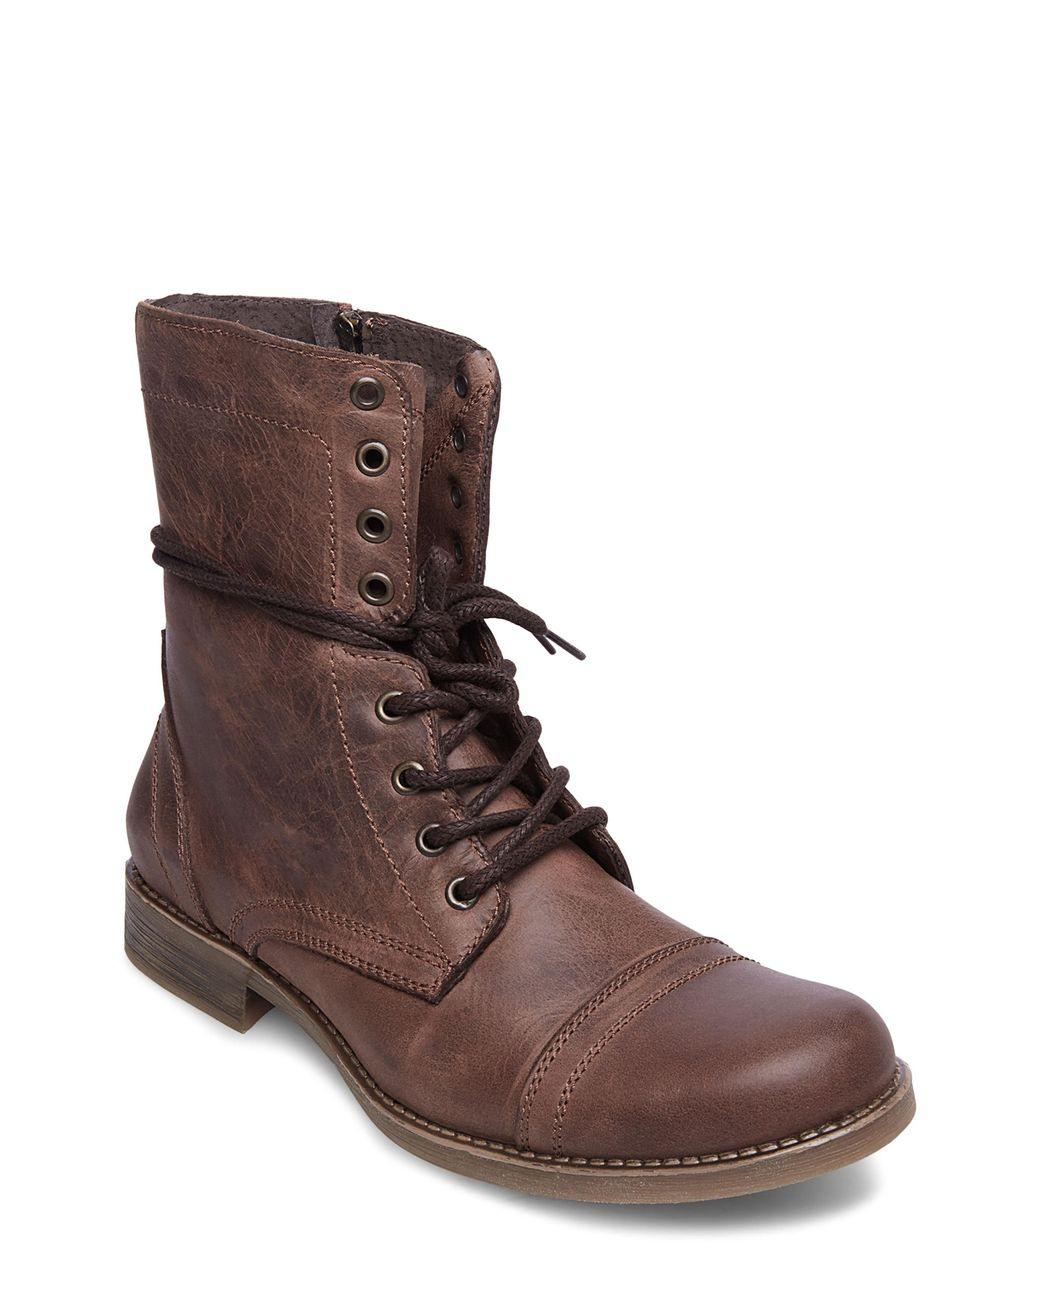 3cd0a6f184e Lyst - Steve Madden Troopah-c Cap Toe Boot in Brown for Men